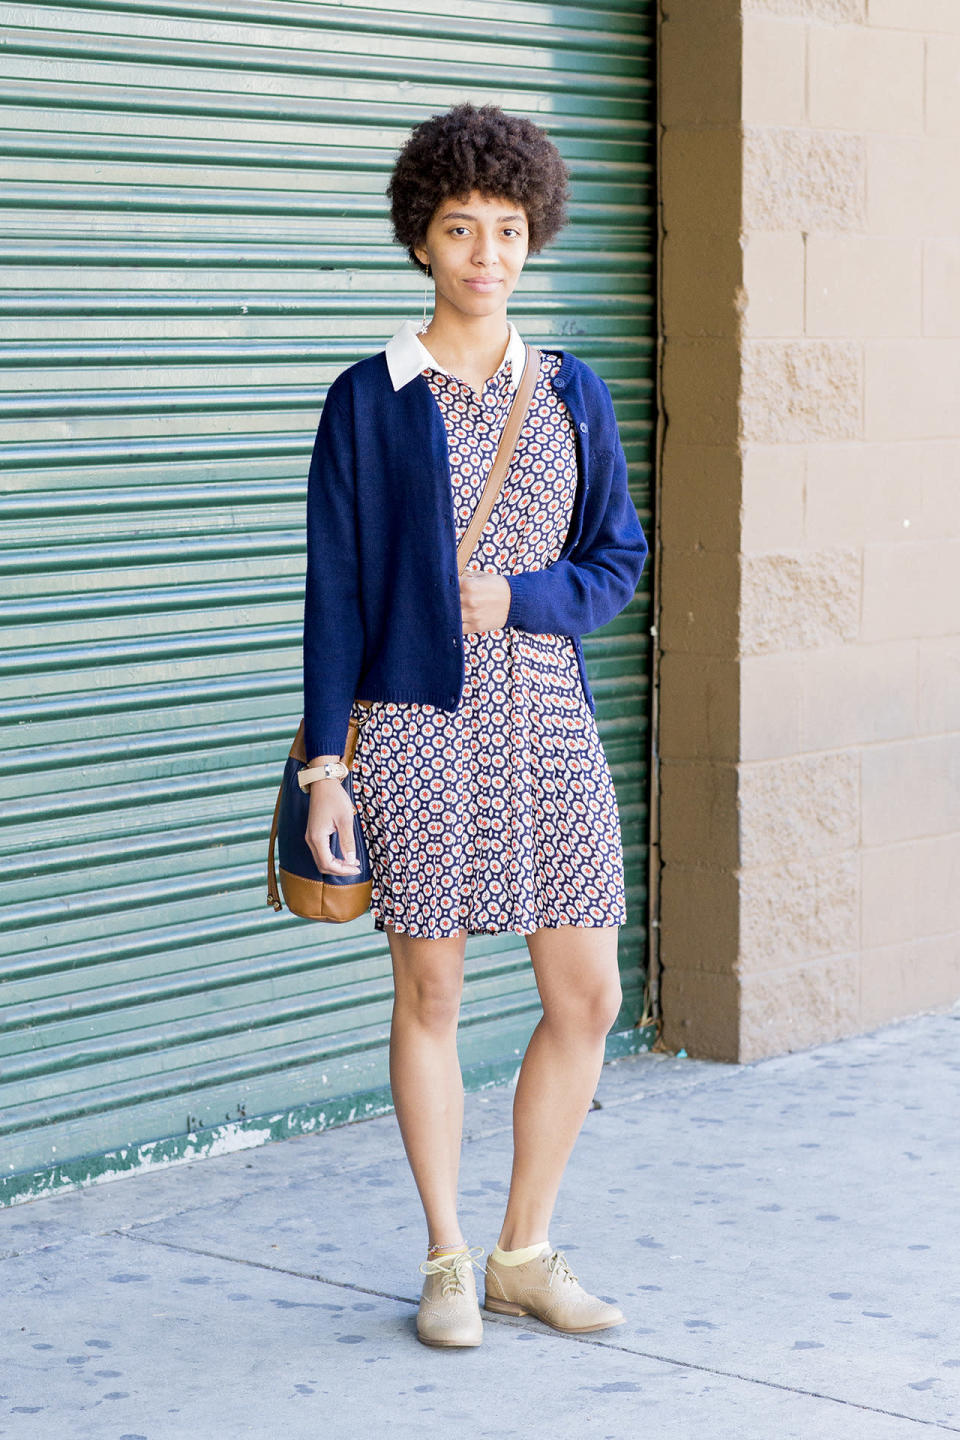 """<p><b>Yahoo Style:</b> How long have you been in L.A.?<br><b>Diana Will:</b> I just moved to L.A. from Nevada two weeks ago, and I love it. I was brought up Christian. A friend mentioned this church, and we all came here together. I liked the service; it was very uplifting. The sermon was about how even though evil is plotting against us and we're gonna fall down, God's got us.</p><p><b>Does God have you in your daily life?<br></b>God's been having my back for as long as I can remember. I was just going through a financial crisis and thought I couldn't get a job or pay the rent, but in the past few weeks I got a job and soon I'll be going to school even though I thought I couldn't afford it. But God said, """"No worries, I've got you,"""" and I can't begin to express how grateful I am.</p><p><b>Do your nonreligious friends ask you what being a Christian is like?<br></b>Yes, a lot. I say it's like being a fisherman. Basically you're out in the lake and you don't know what you're going to catch for the day, but you know that no matter how the day ends, you have someone who cares for you and loves you. You're constantly surrounded by this beautiful aura. It's so hard to explain.</p><p><b>Do you think that if you weren't raised Christian, you would have come to it?<br></b>Yes. There's something about God's presence that really draws you in.</p><p><b>You are so cute, and you have great style. What do you call it?<br></b>Plain Jane. The dress is from Macy's. I always wear dresses to church on Sundays.</p>"""